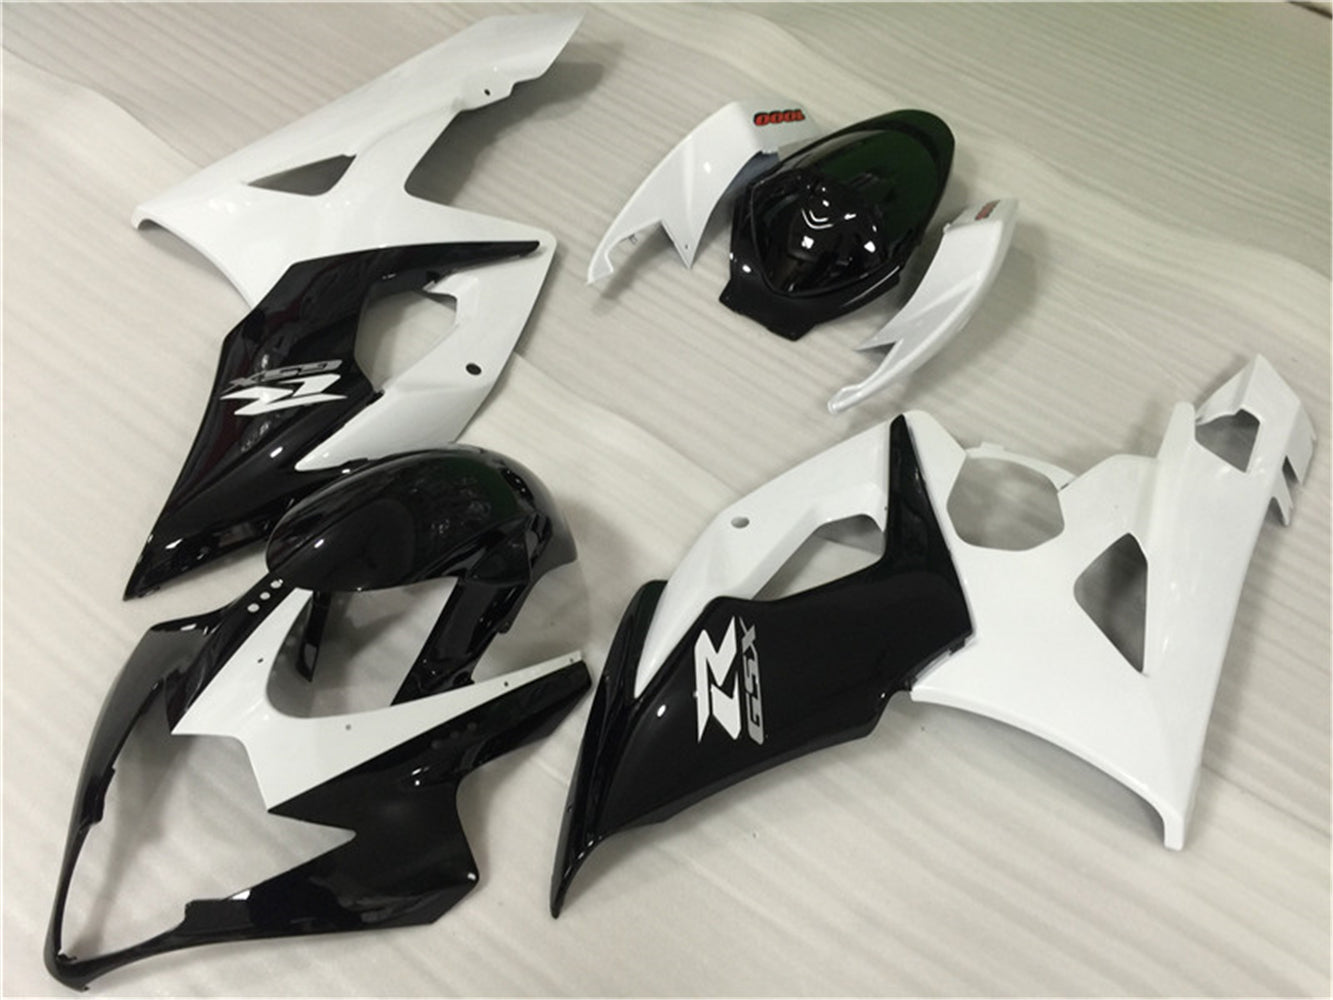 NT Aftermarket Injection ABS Plastic Fairing Fit for GSXR 1000 2005-2006 Black White N014